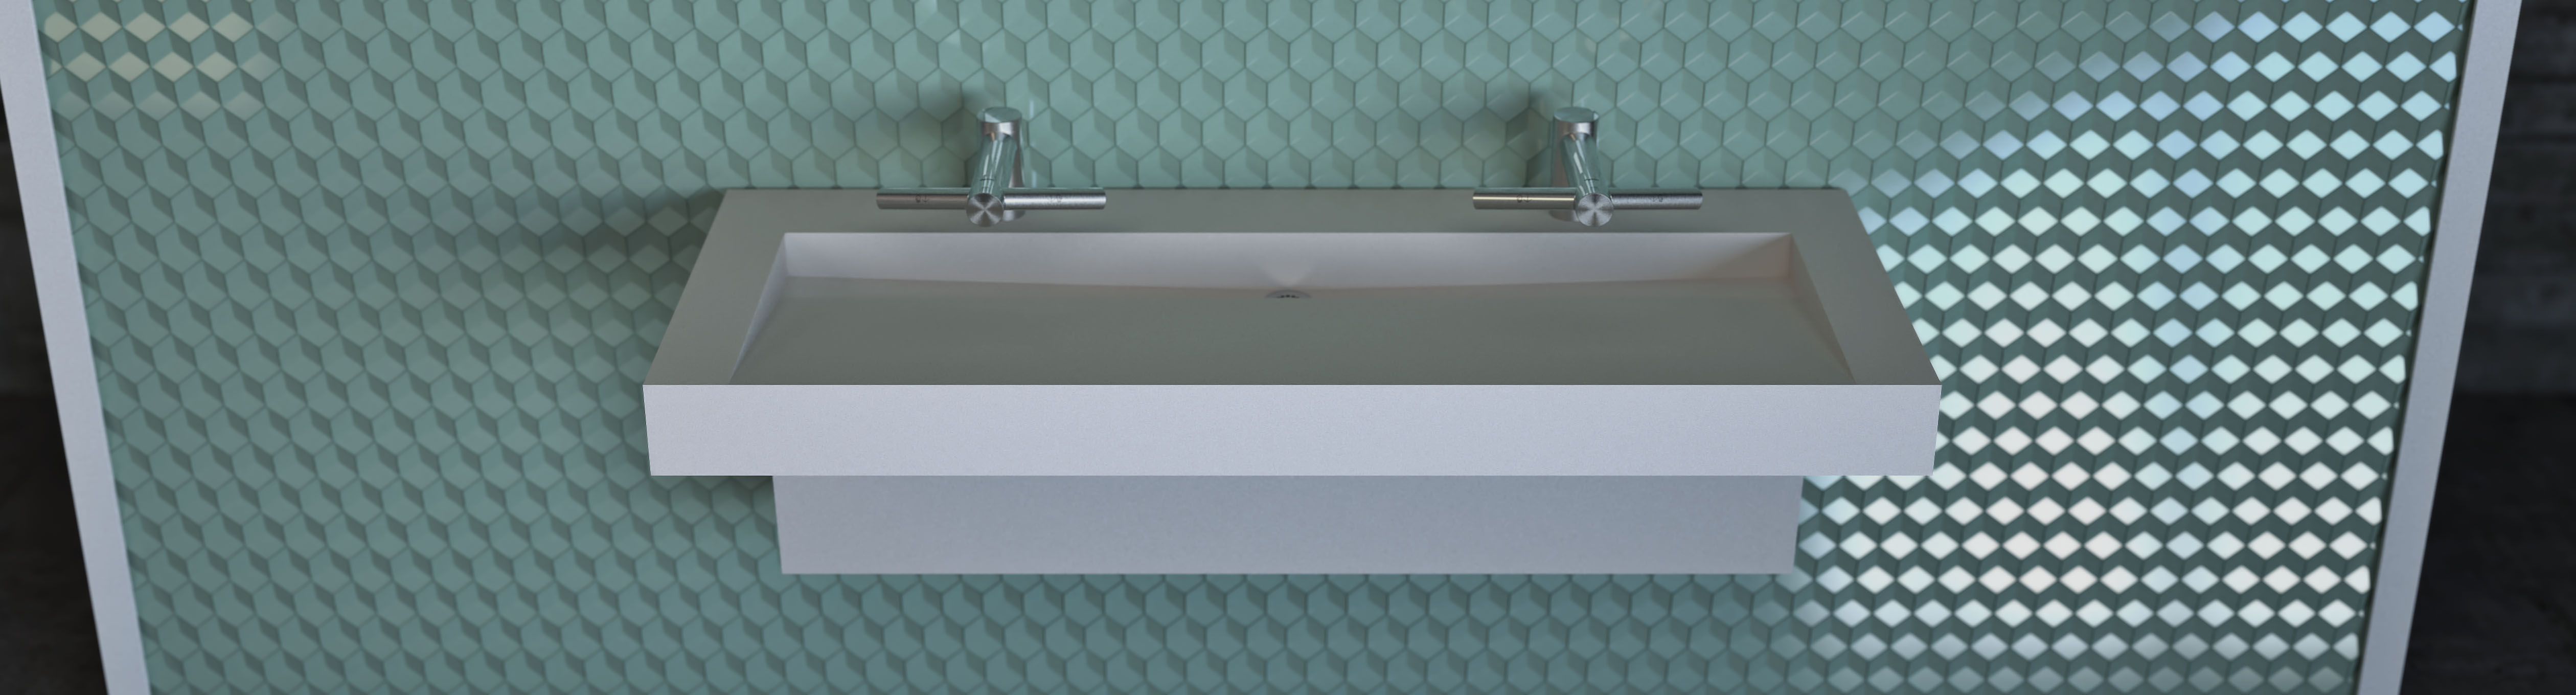 Commercial Trough Sink -Slant